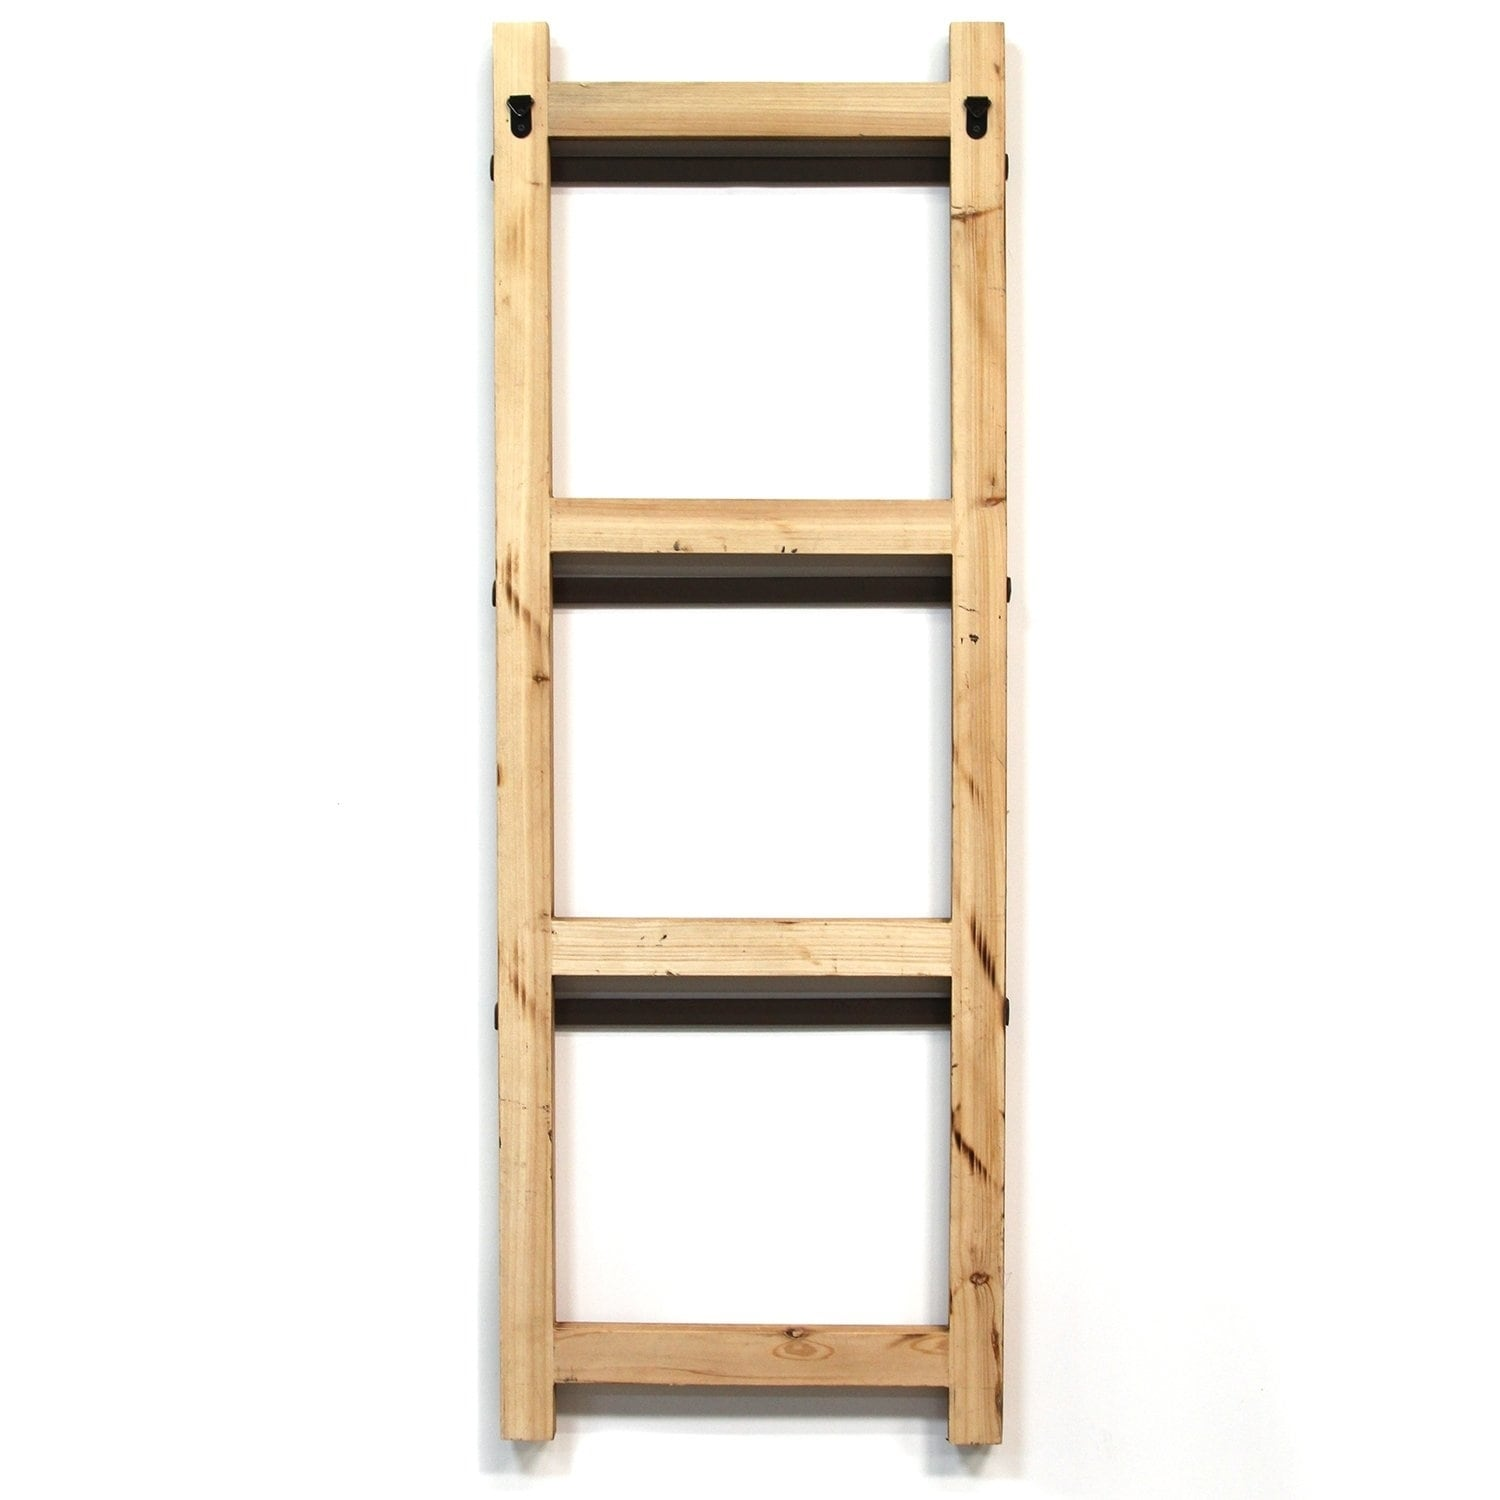 Stratton Home Decor Decorative Ladder With Baskets Wall Decor On Sale Overstock 22989031